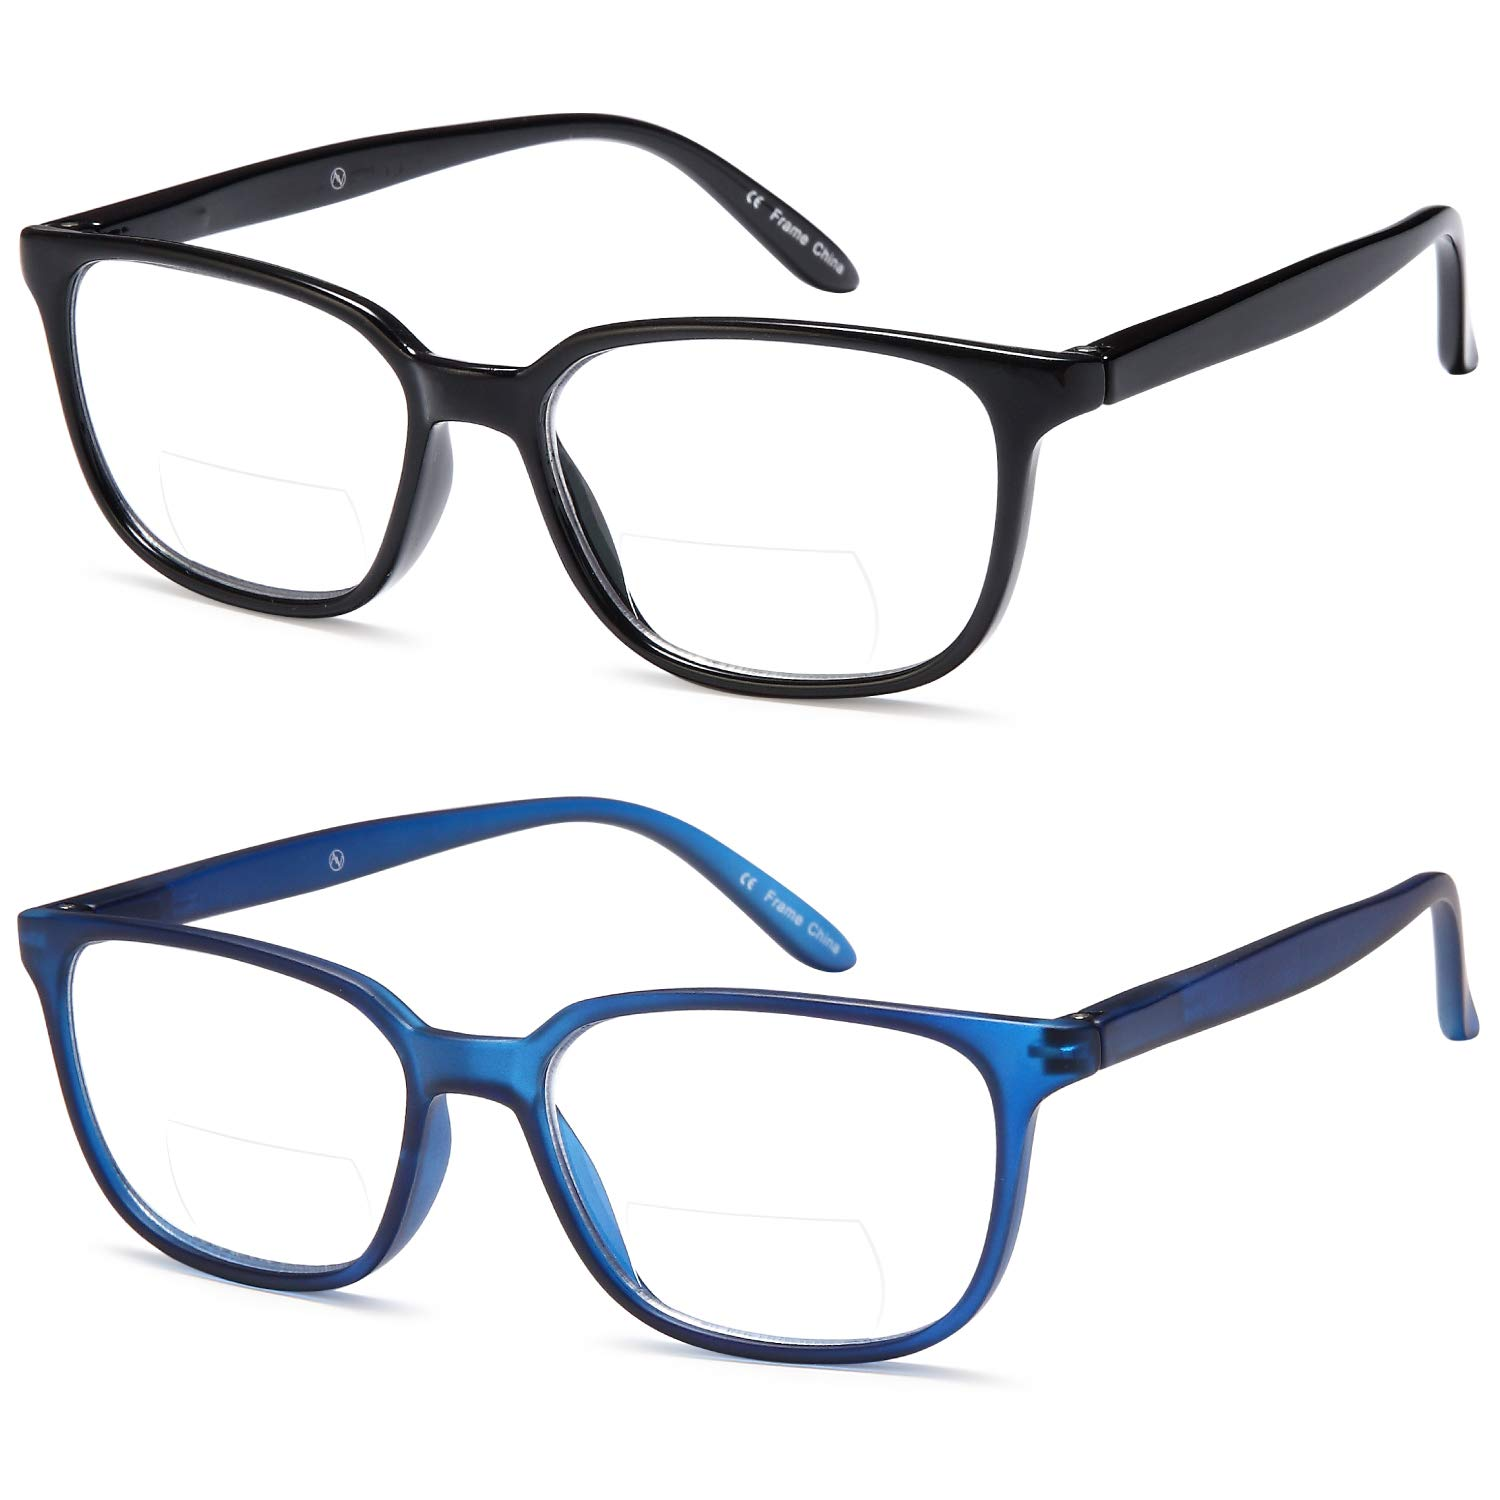 dd6b1ac699a Amazon.com  ALTEC Vision Pack of 2 Classic Style Bifocal Readers Spring  Hinge Reading Glasses – 1.50x  Health   Personal Care